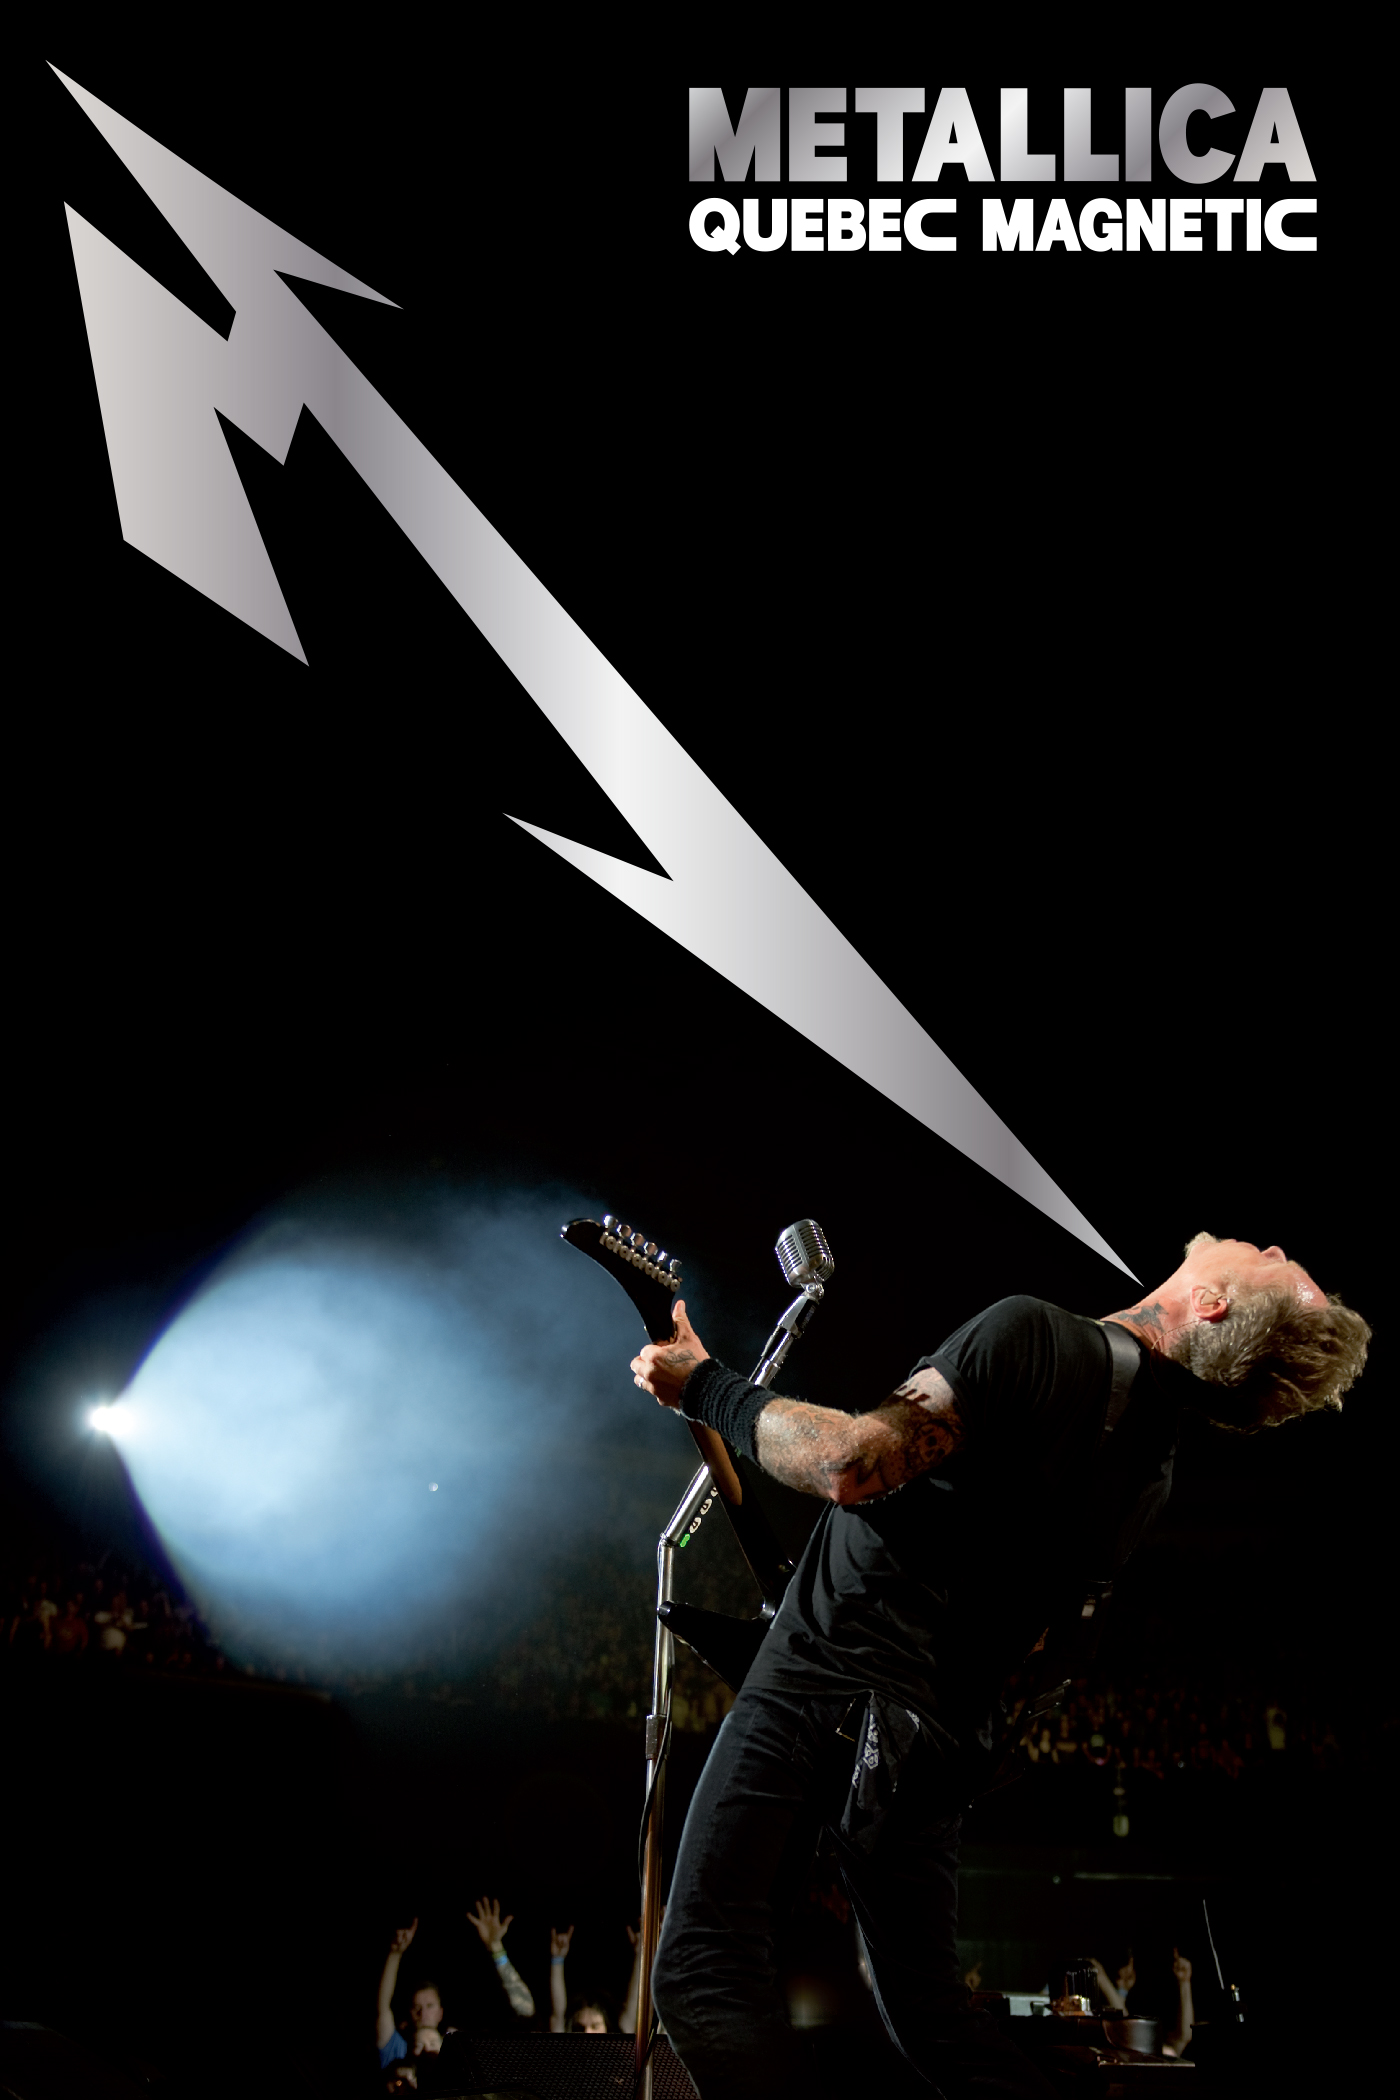 Metallica – Quebec Magnetic (2012) [iTunes Movie - HD]